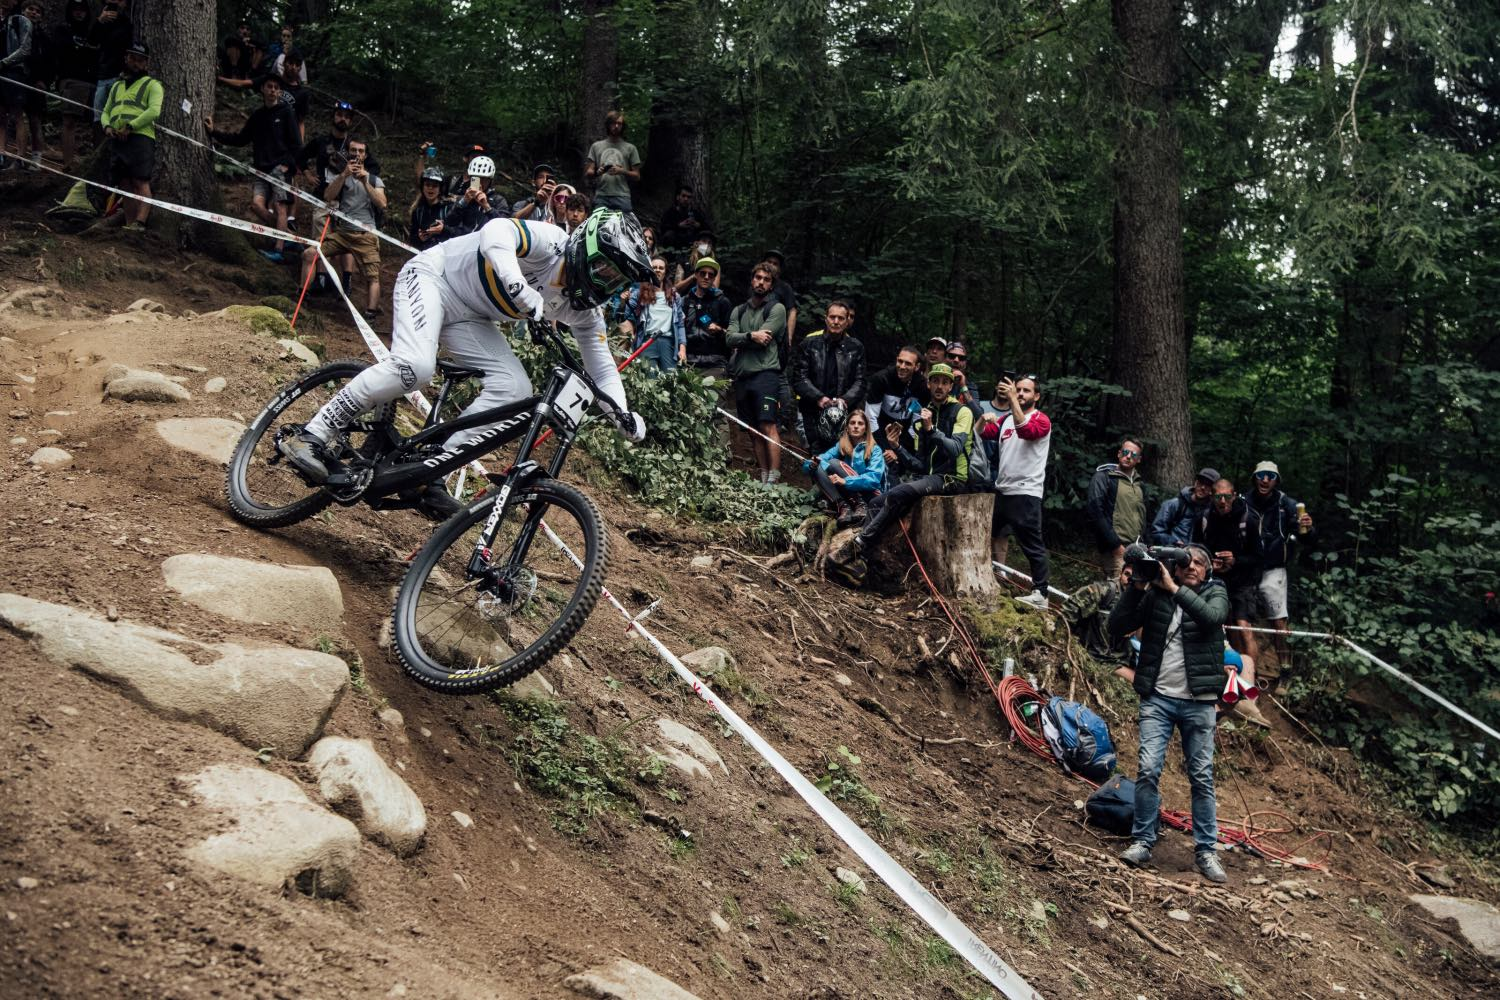 Troy Brosnan competing at the 2021 UCI Downhill MTB World Championships